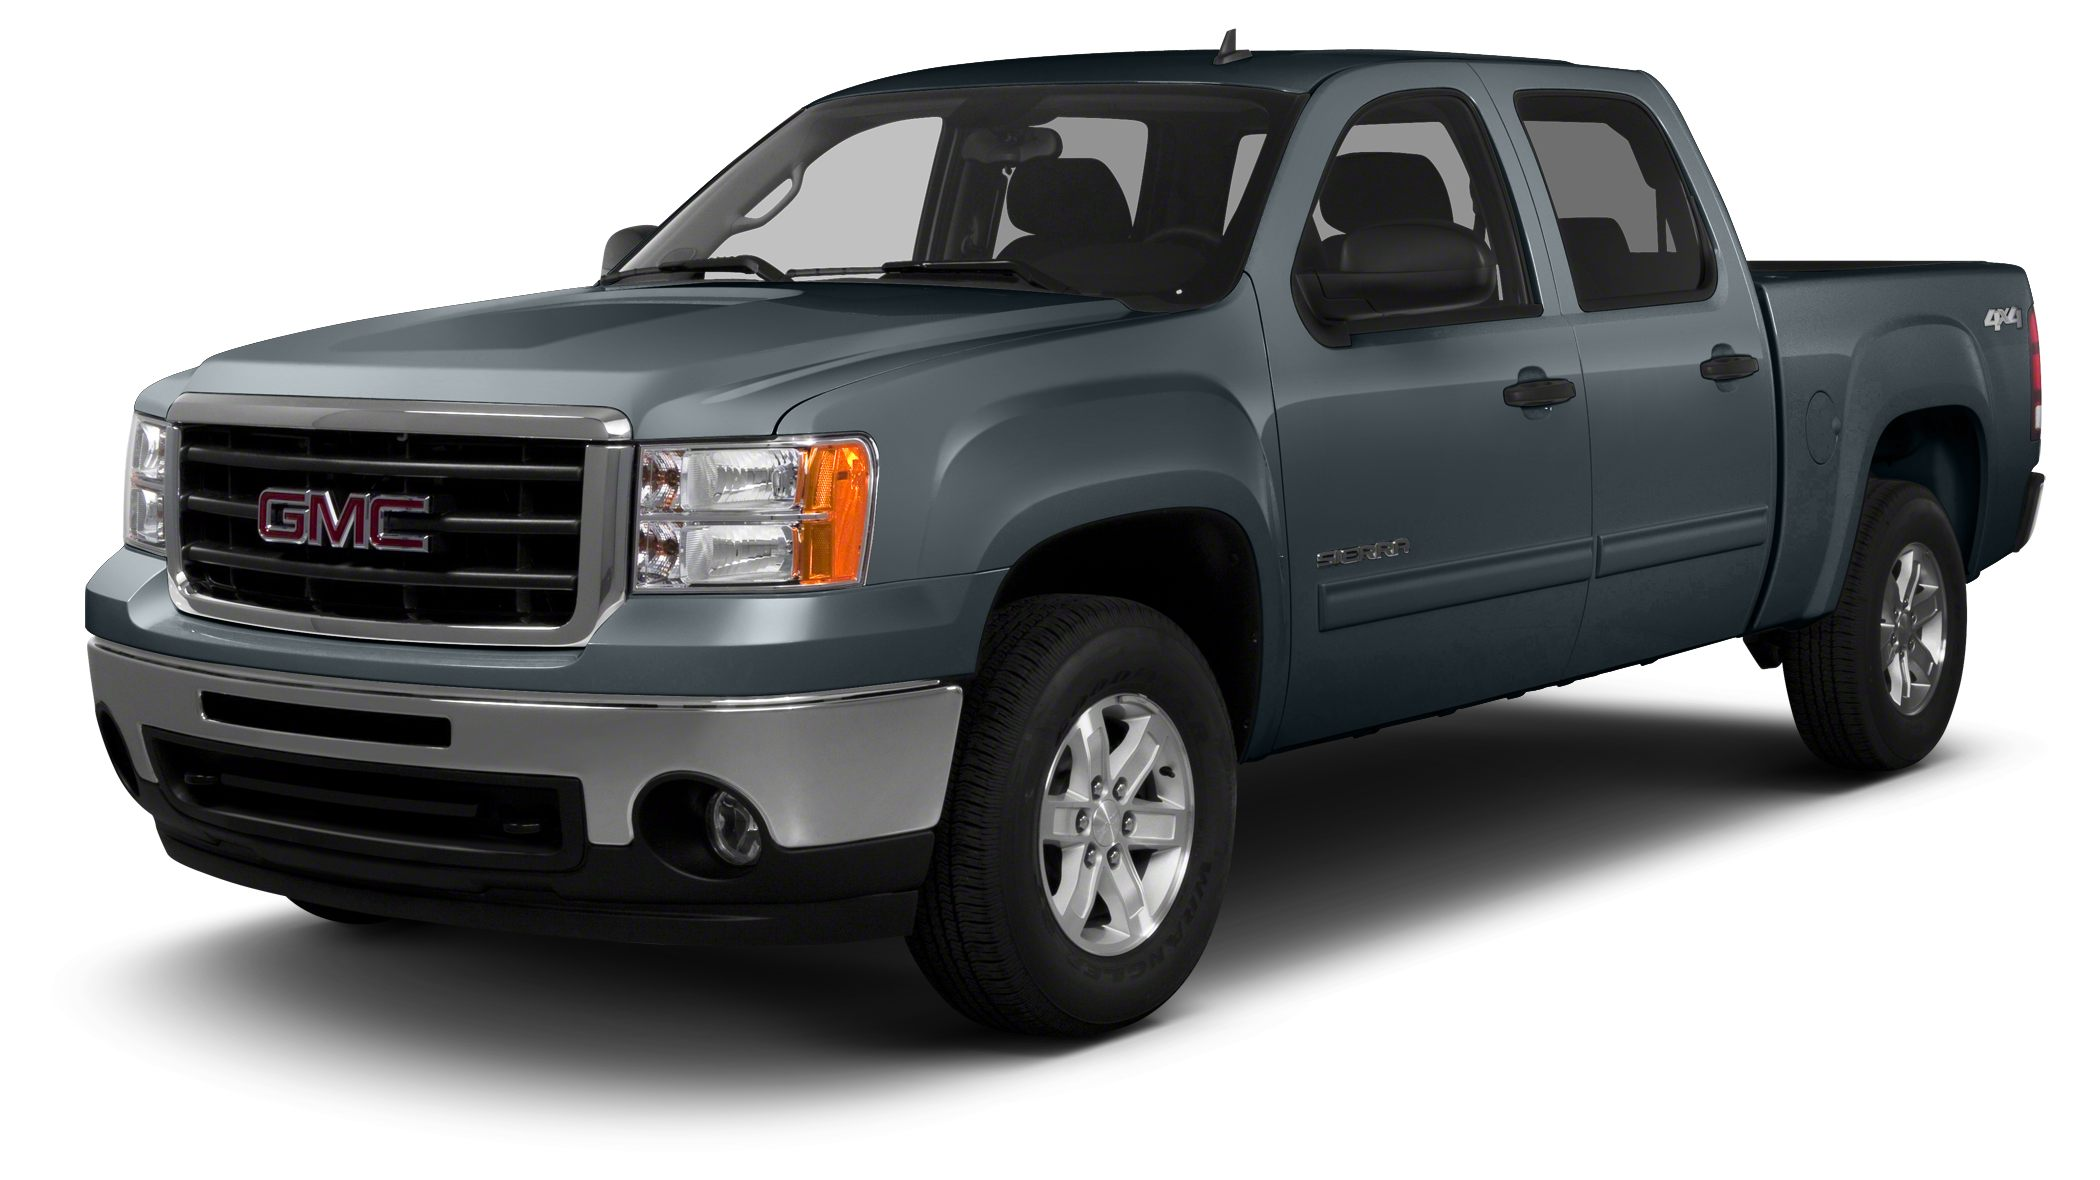 2013 GMC Sierra 1500 SLE OPTION PACKAGES TRAILERING PACKAGE HEAVY-DUTY includes trailering